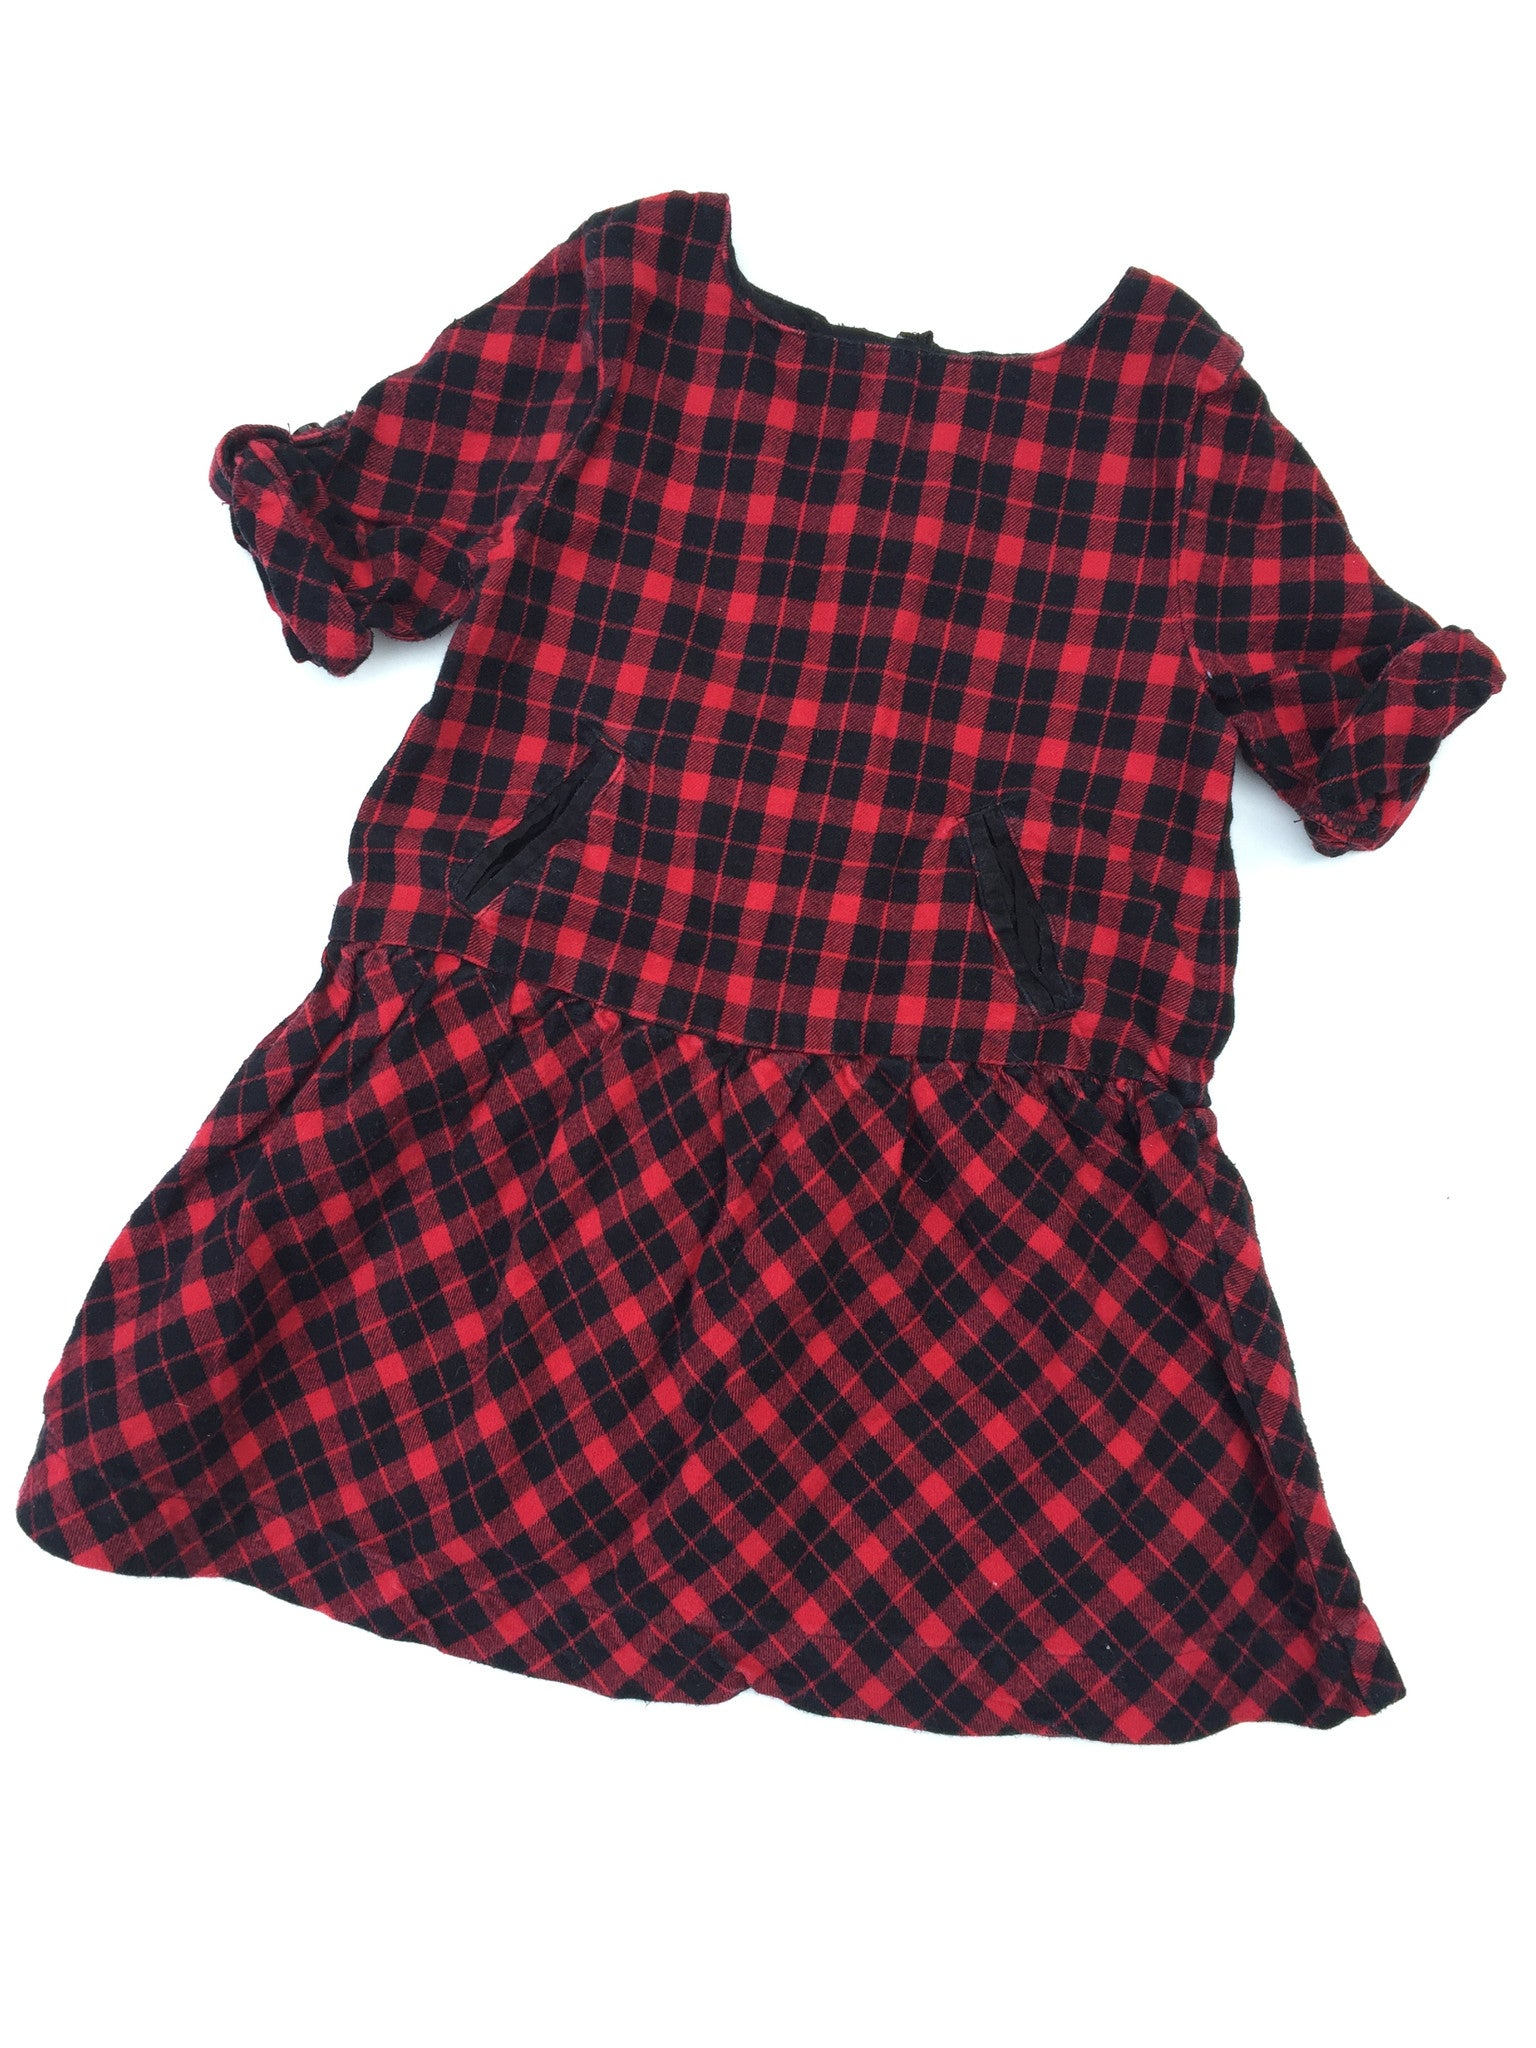 Joe Fresh Checkered Frock | 2T